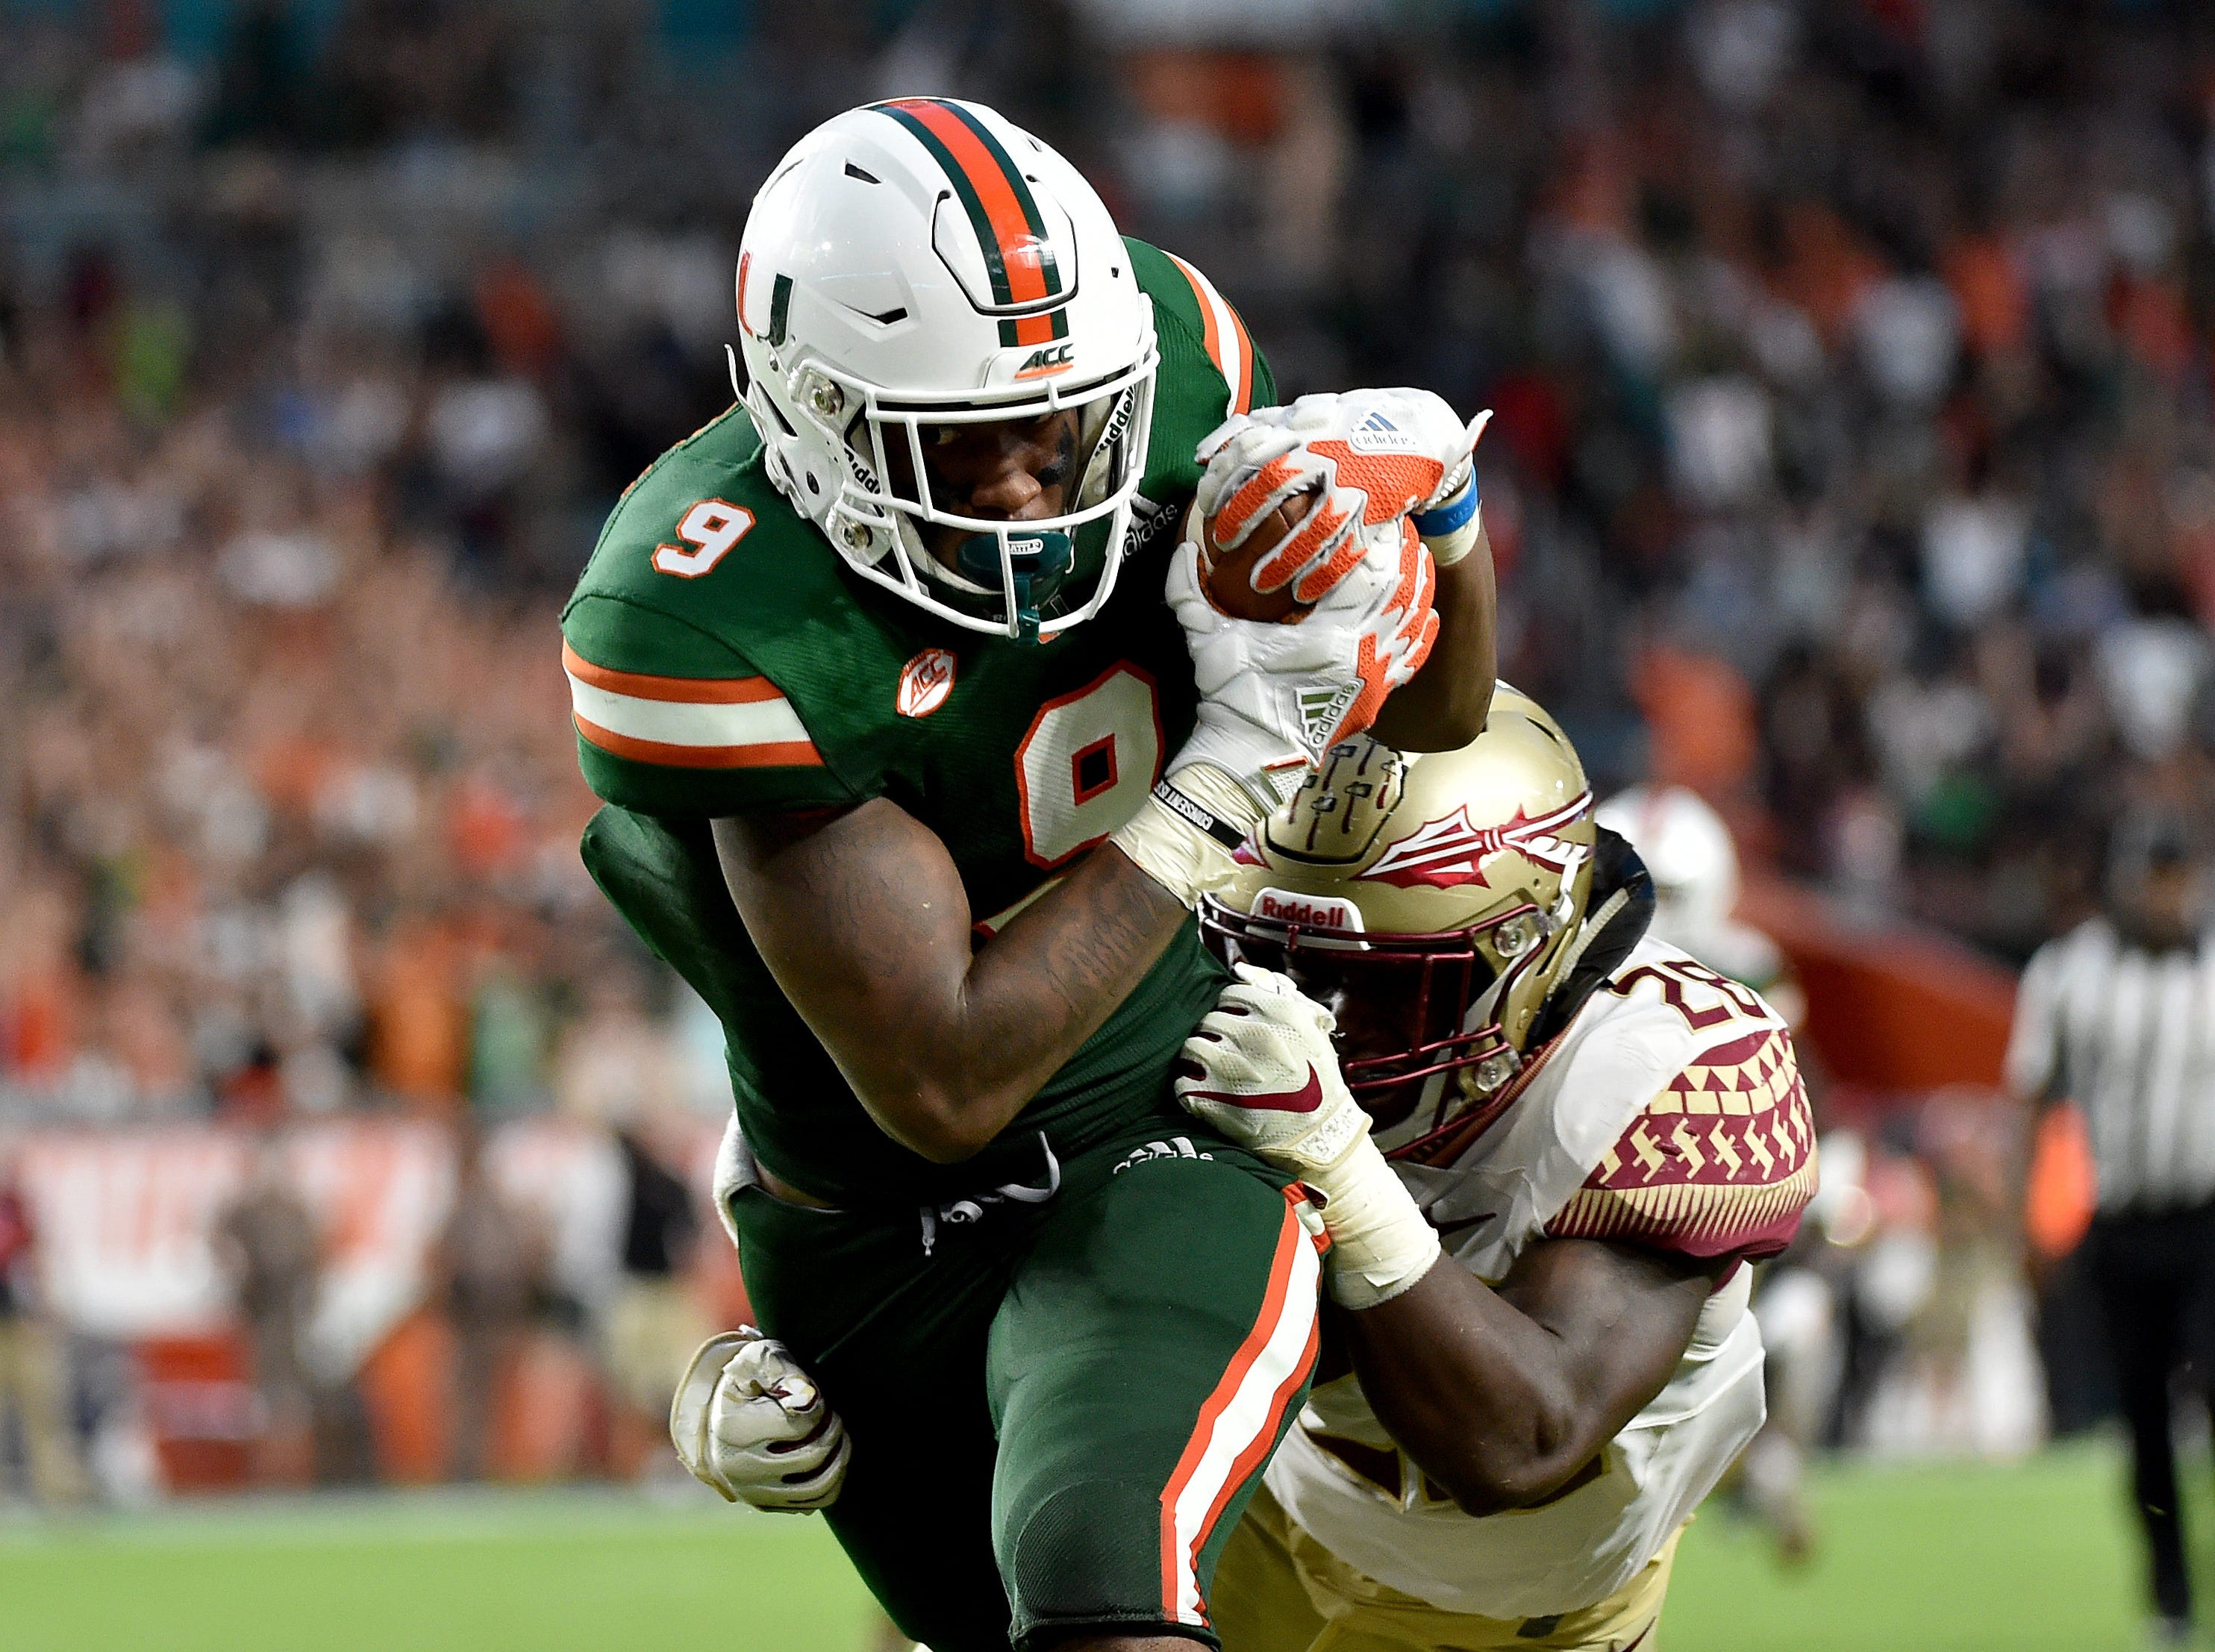 Oct 6, 2018; Miami Gardens, FL, USA; Miami Hurricanes tight end Brevin Jordan (9) runs in a touchdown as Florida State Seminoles linebacker DeCalon Brooks (28) defends the play during the second half at Hard Rock Stadium. Mandatory Credit: Steve Mitchell-USA TODAY Sports